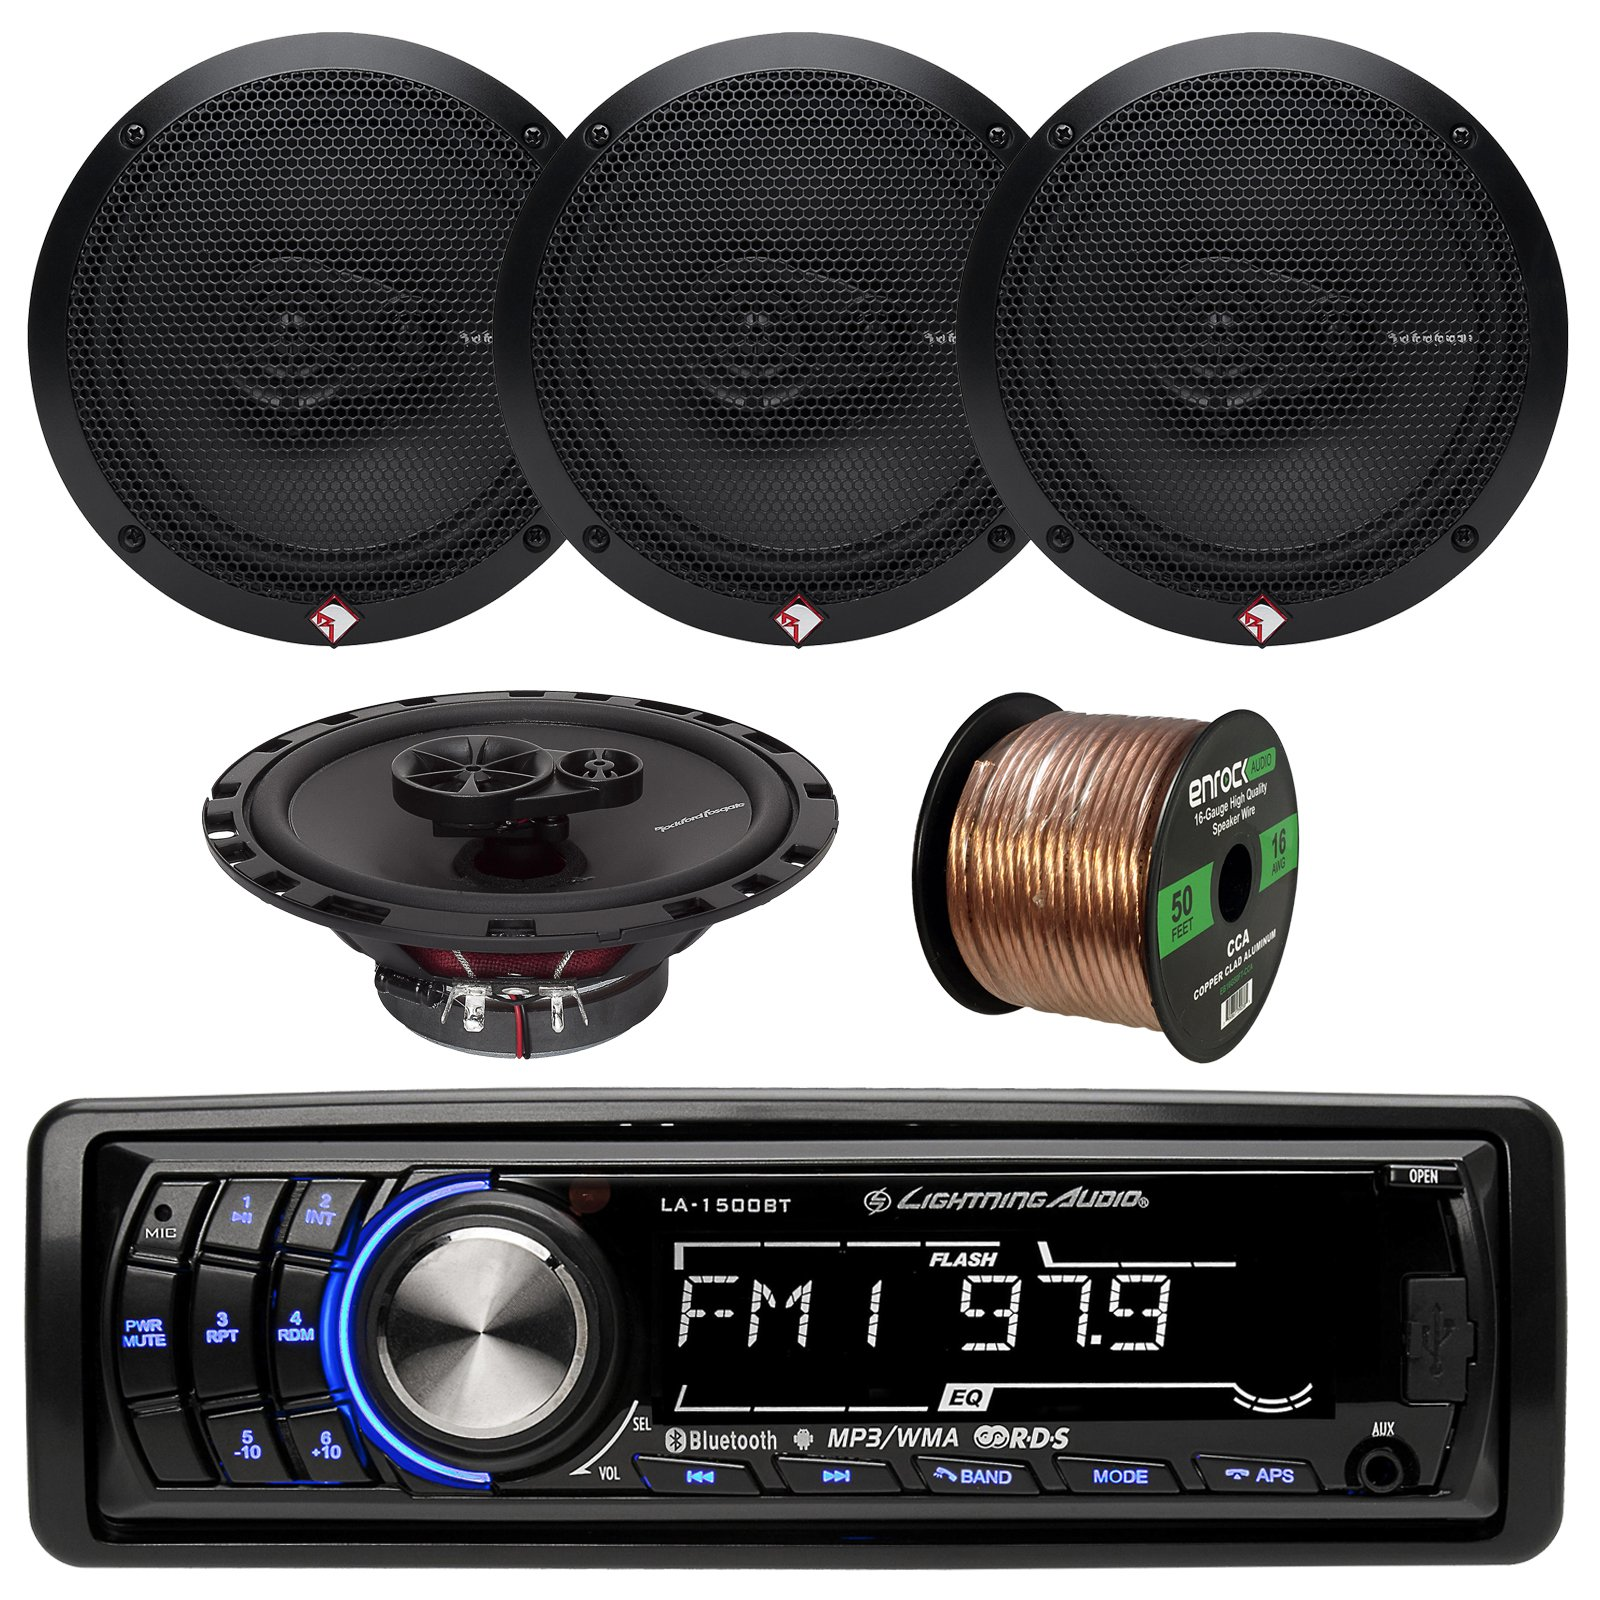 Lightning Audio LA1500BT MP3 Bluetooth Stereo Receiver Player Bundle Combo With 4x Rockford Fosgate R165X3 Prime 6.5'' Inch 180 Watt 3-Way Coaxial Speakers + Enrock 50 Foot 16 Gauge Speaker Wire